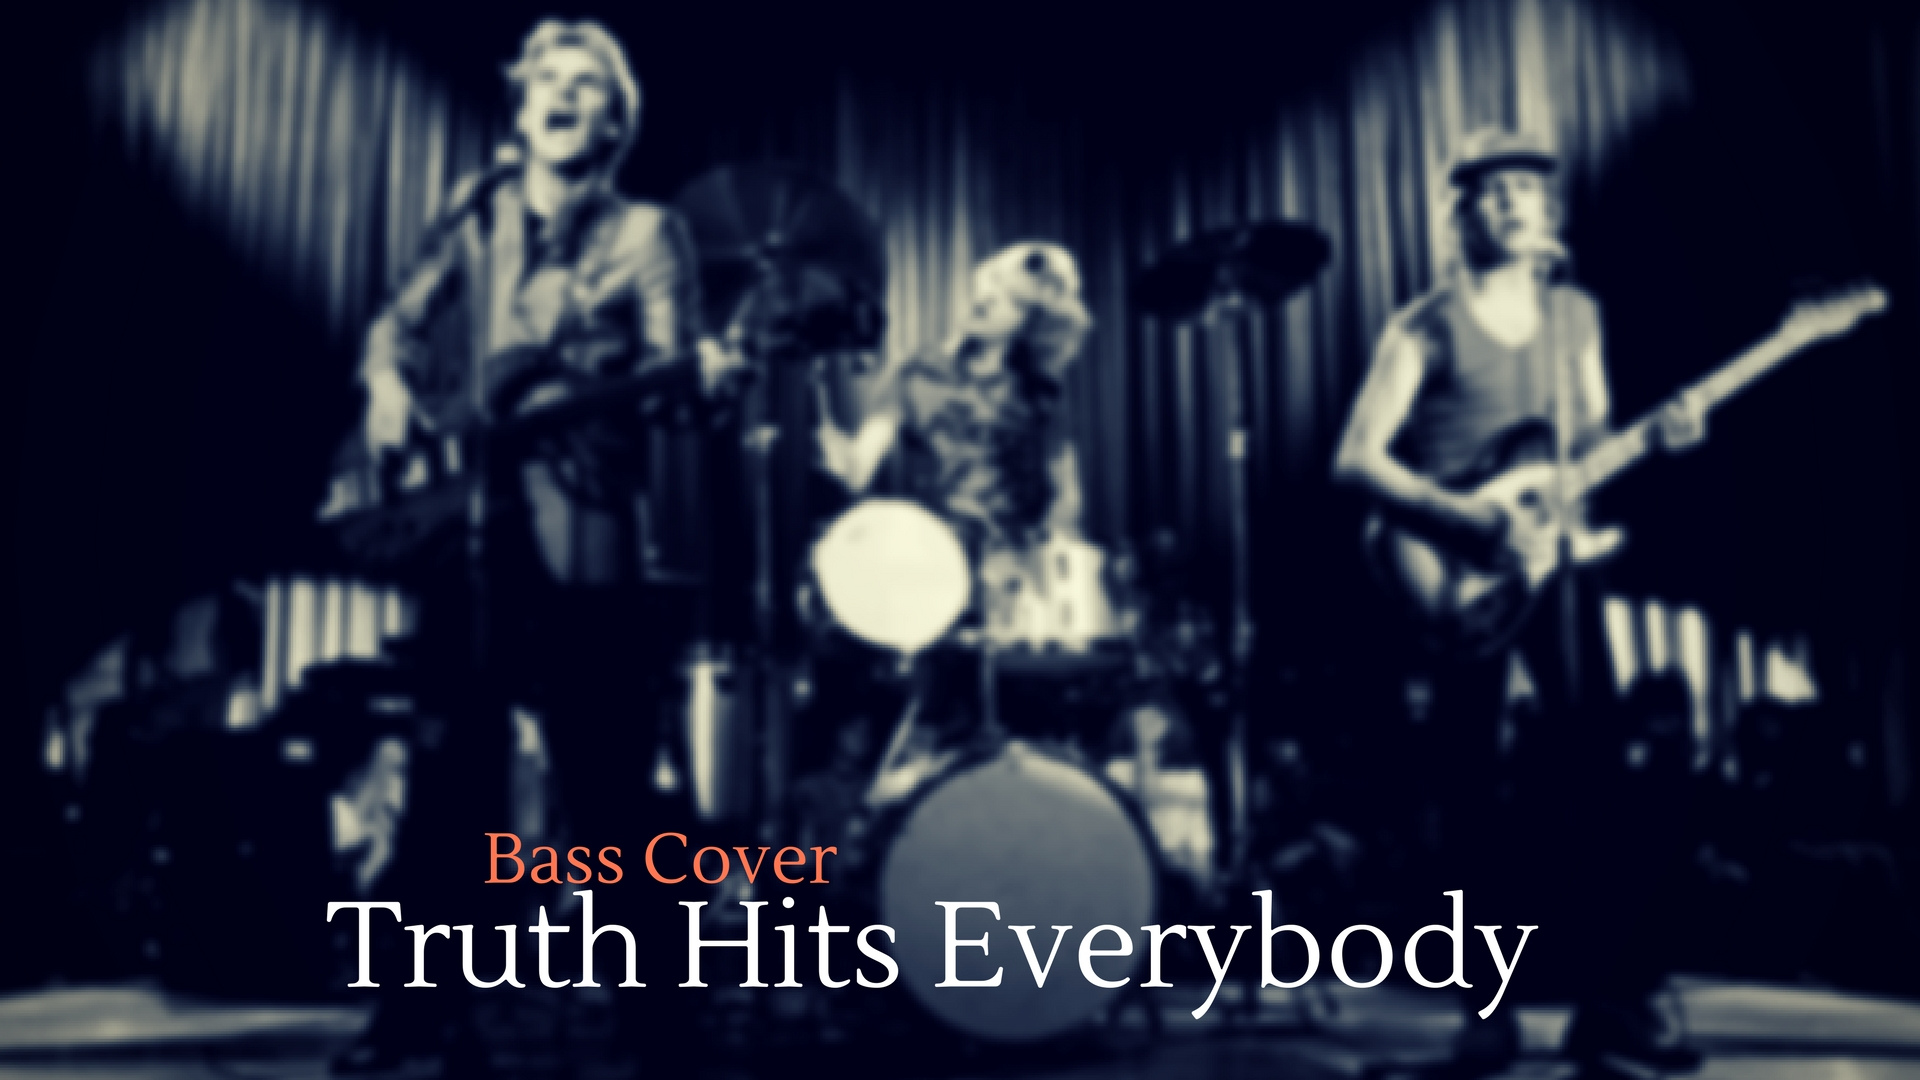 Truth hits everybody bass cover